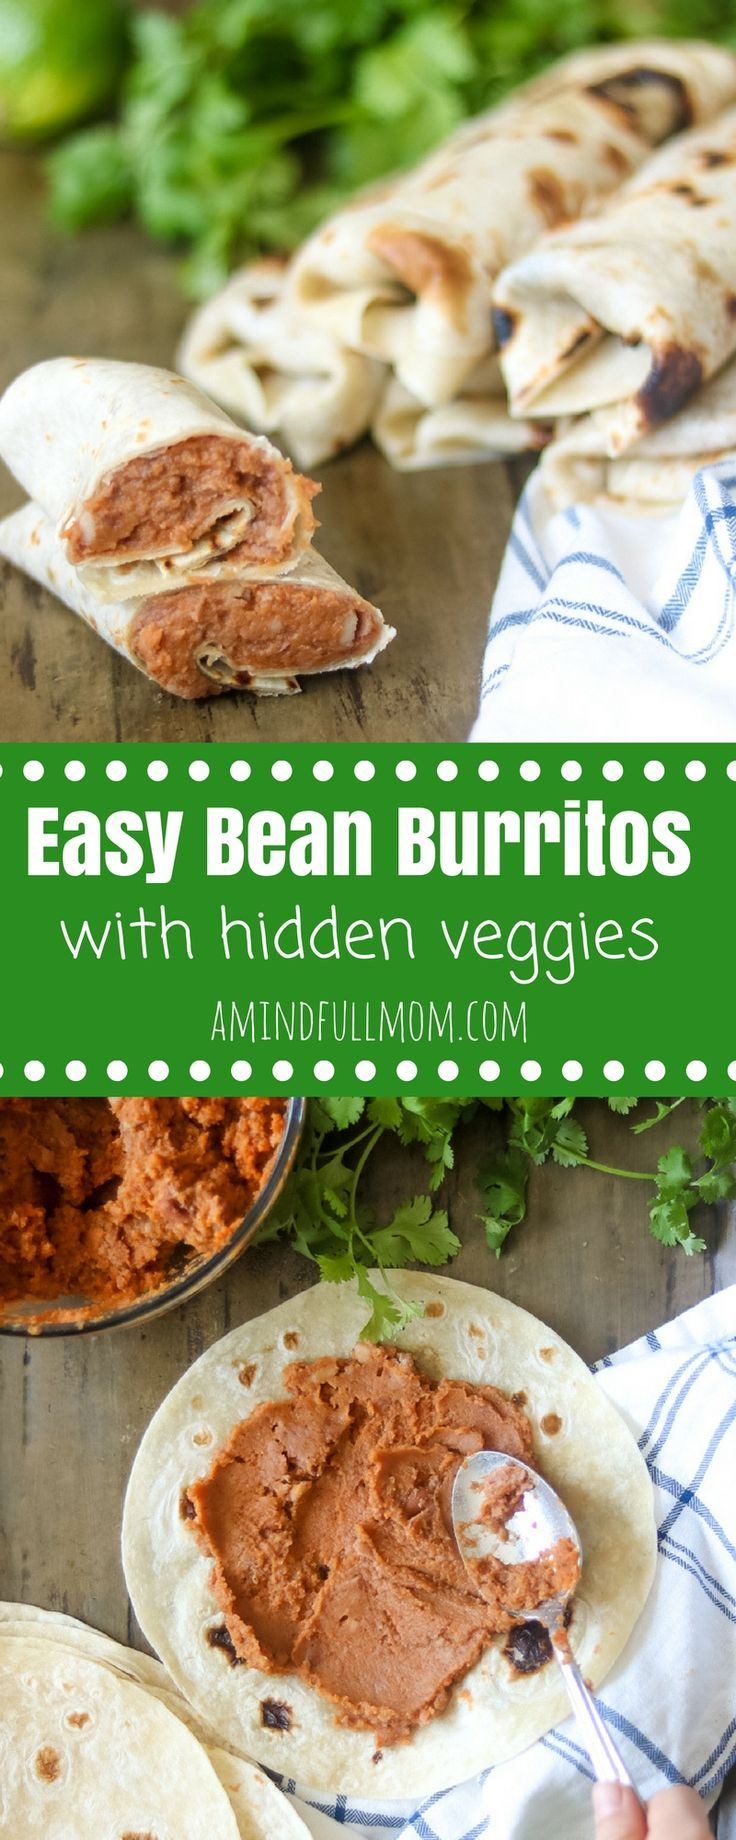 Easy Homemade Bean Burritos: Refried beans and pumpkin puree are mixed together with taco seasonings and stuffed into a flour tortilla for a healthier spin on a vegetarian burrito. No one will guess these refried bean burritos have a serving of veggies.  Gluten free and vegan modifications included. #vegetarianrecipe #burrito #Mexicanrecip #glutenfreerecipe via @amindfullmom